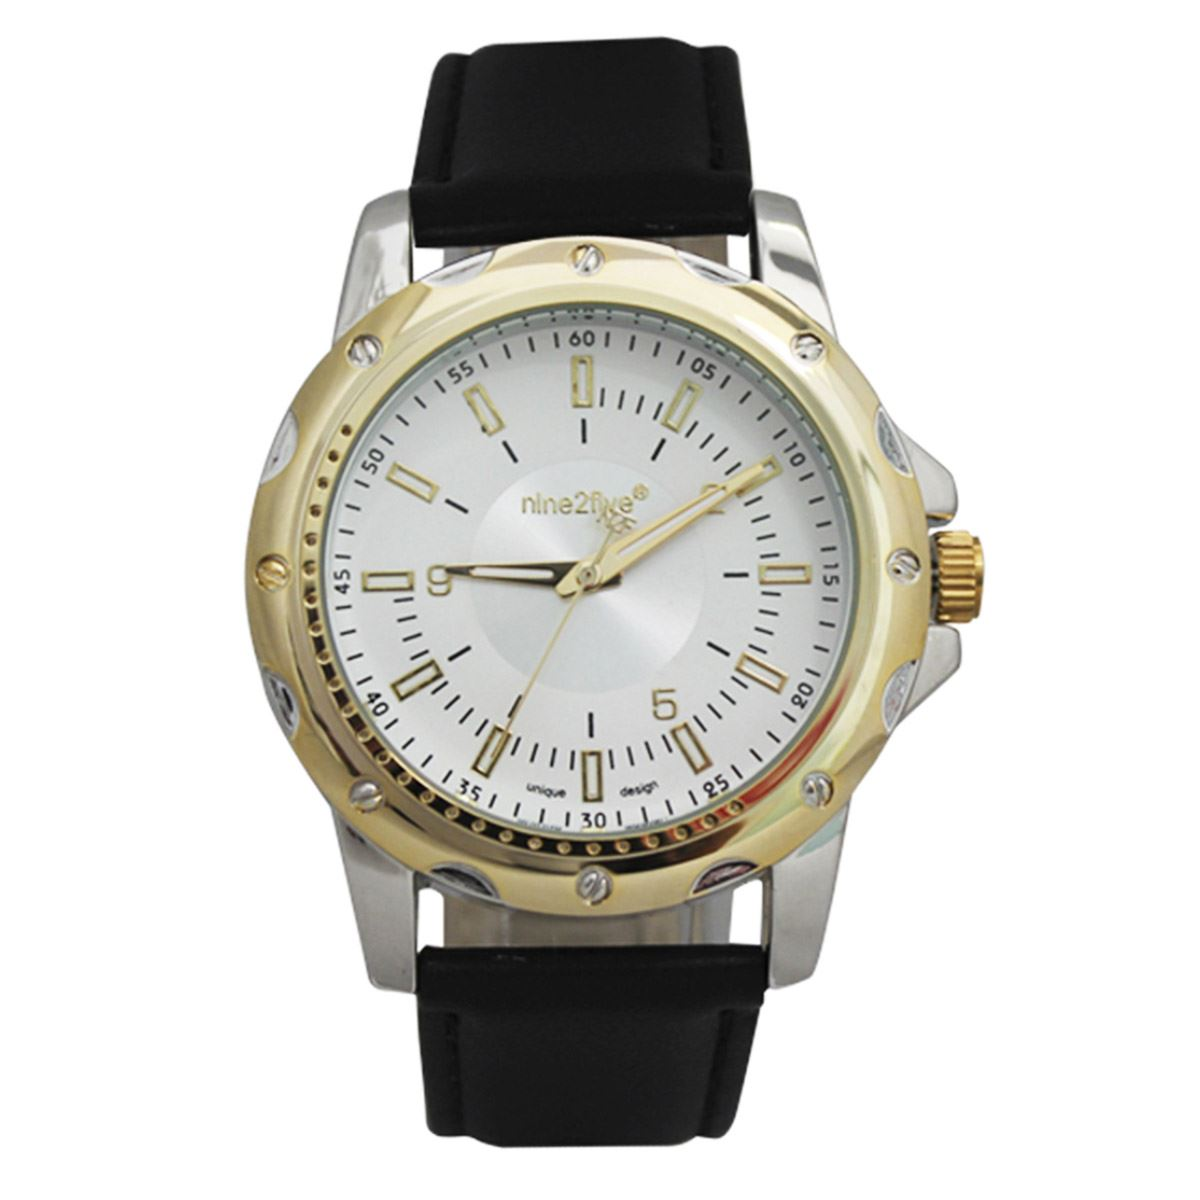 Reloj n2f aclt12nggl caballero  - Sanborns